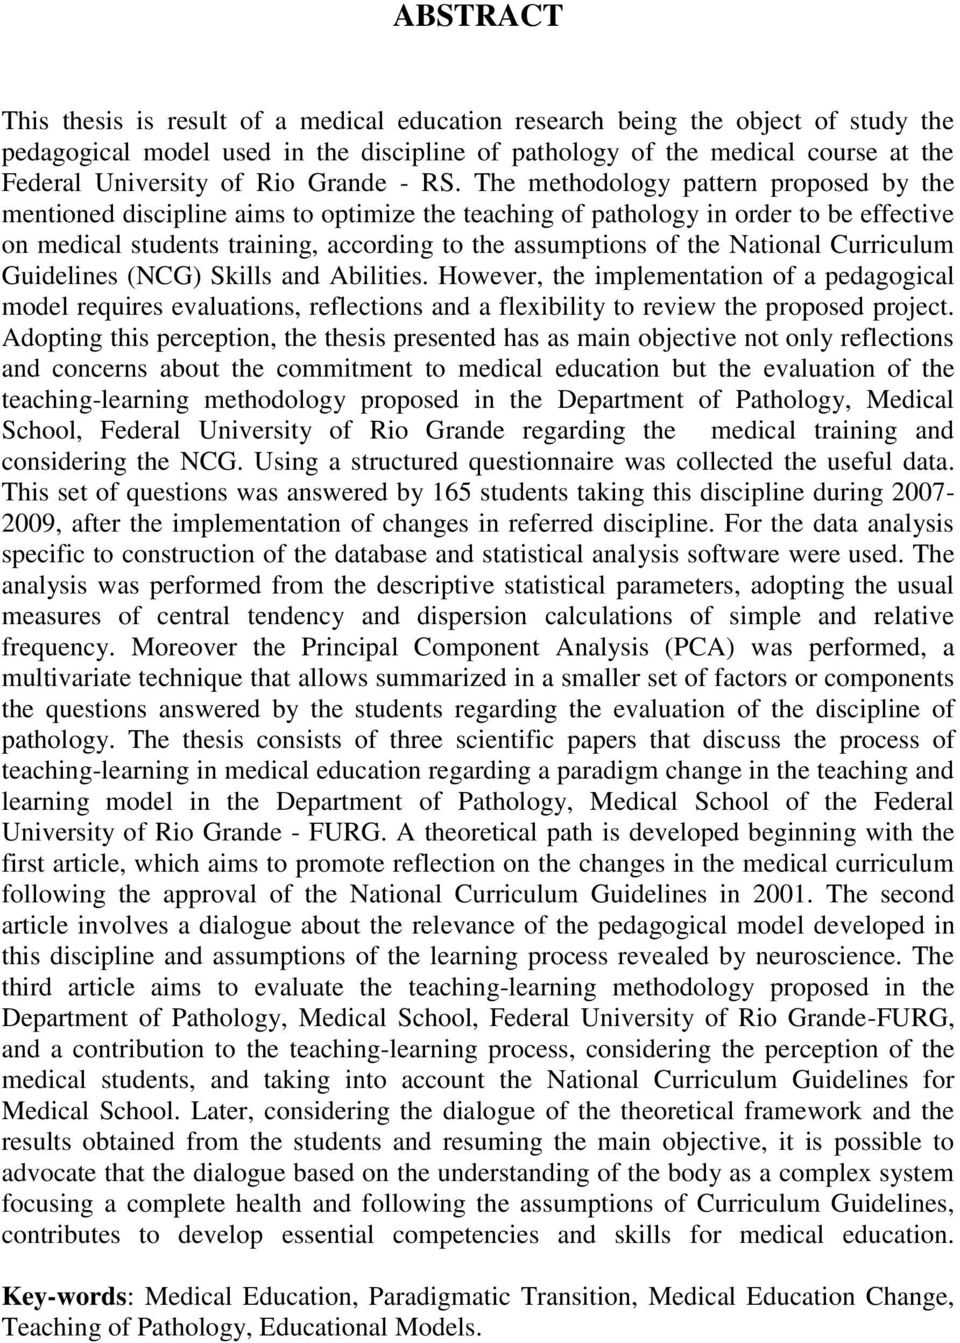 The methodology pattern proposed by the mentioned discipline aims to optimize the teaching of pathology in order to be effective on medical students training, according to the assumptions of the